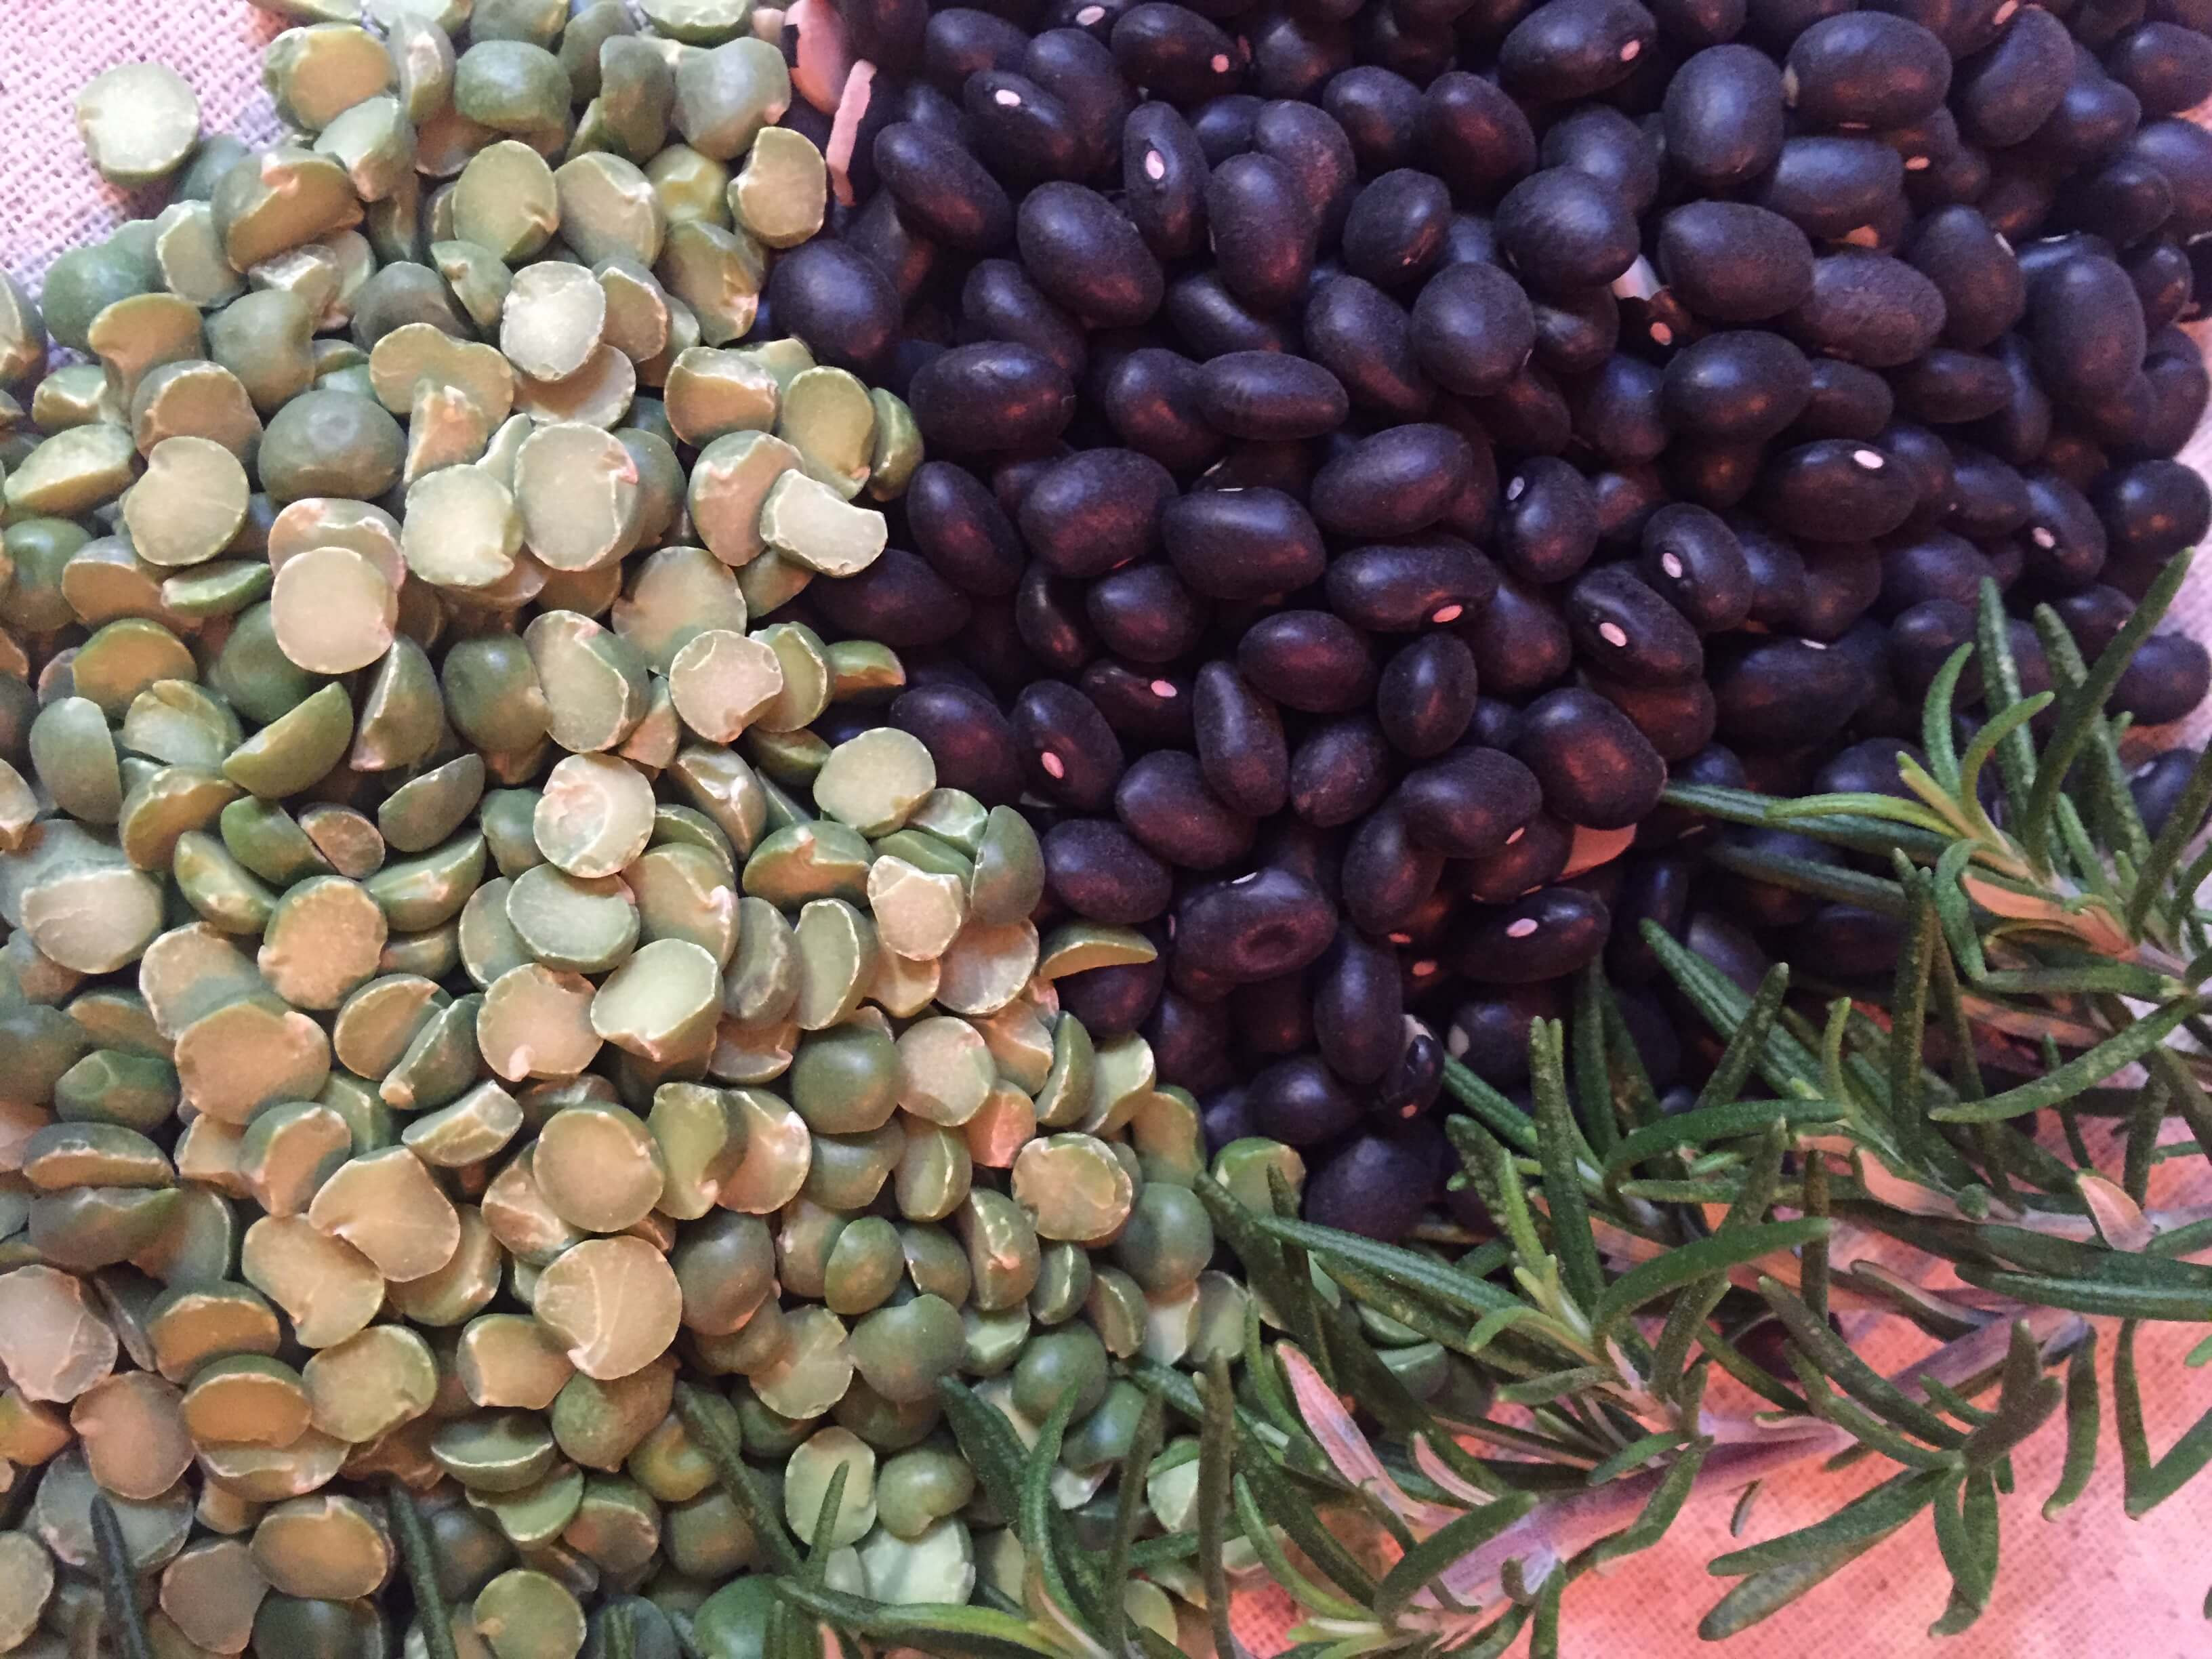 Cooking beans from scratch is not only tasty and better for you, it saves you money AAANNND it's easy with the method I've shared. Check it out!